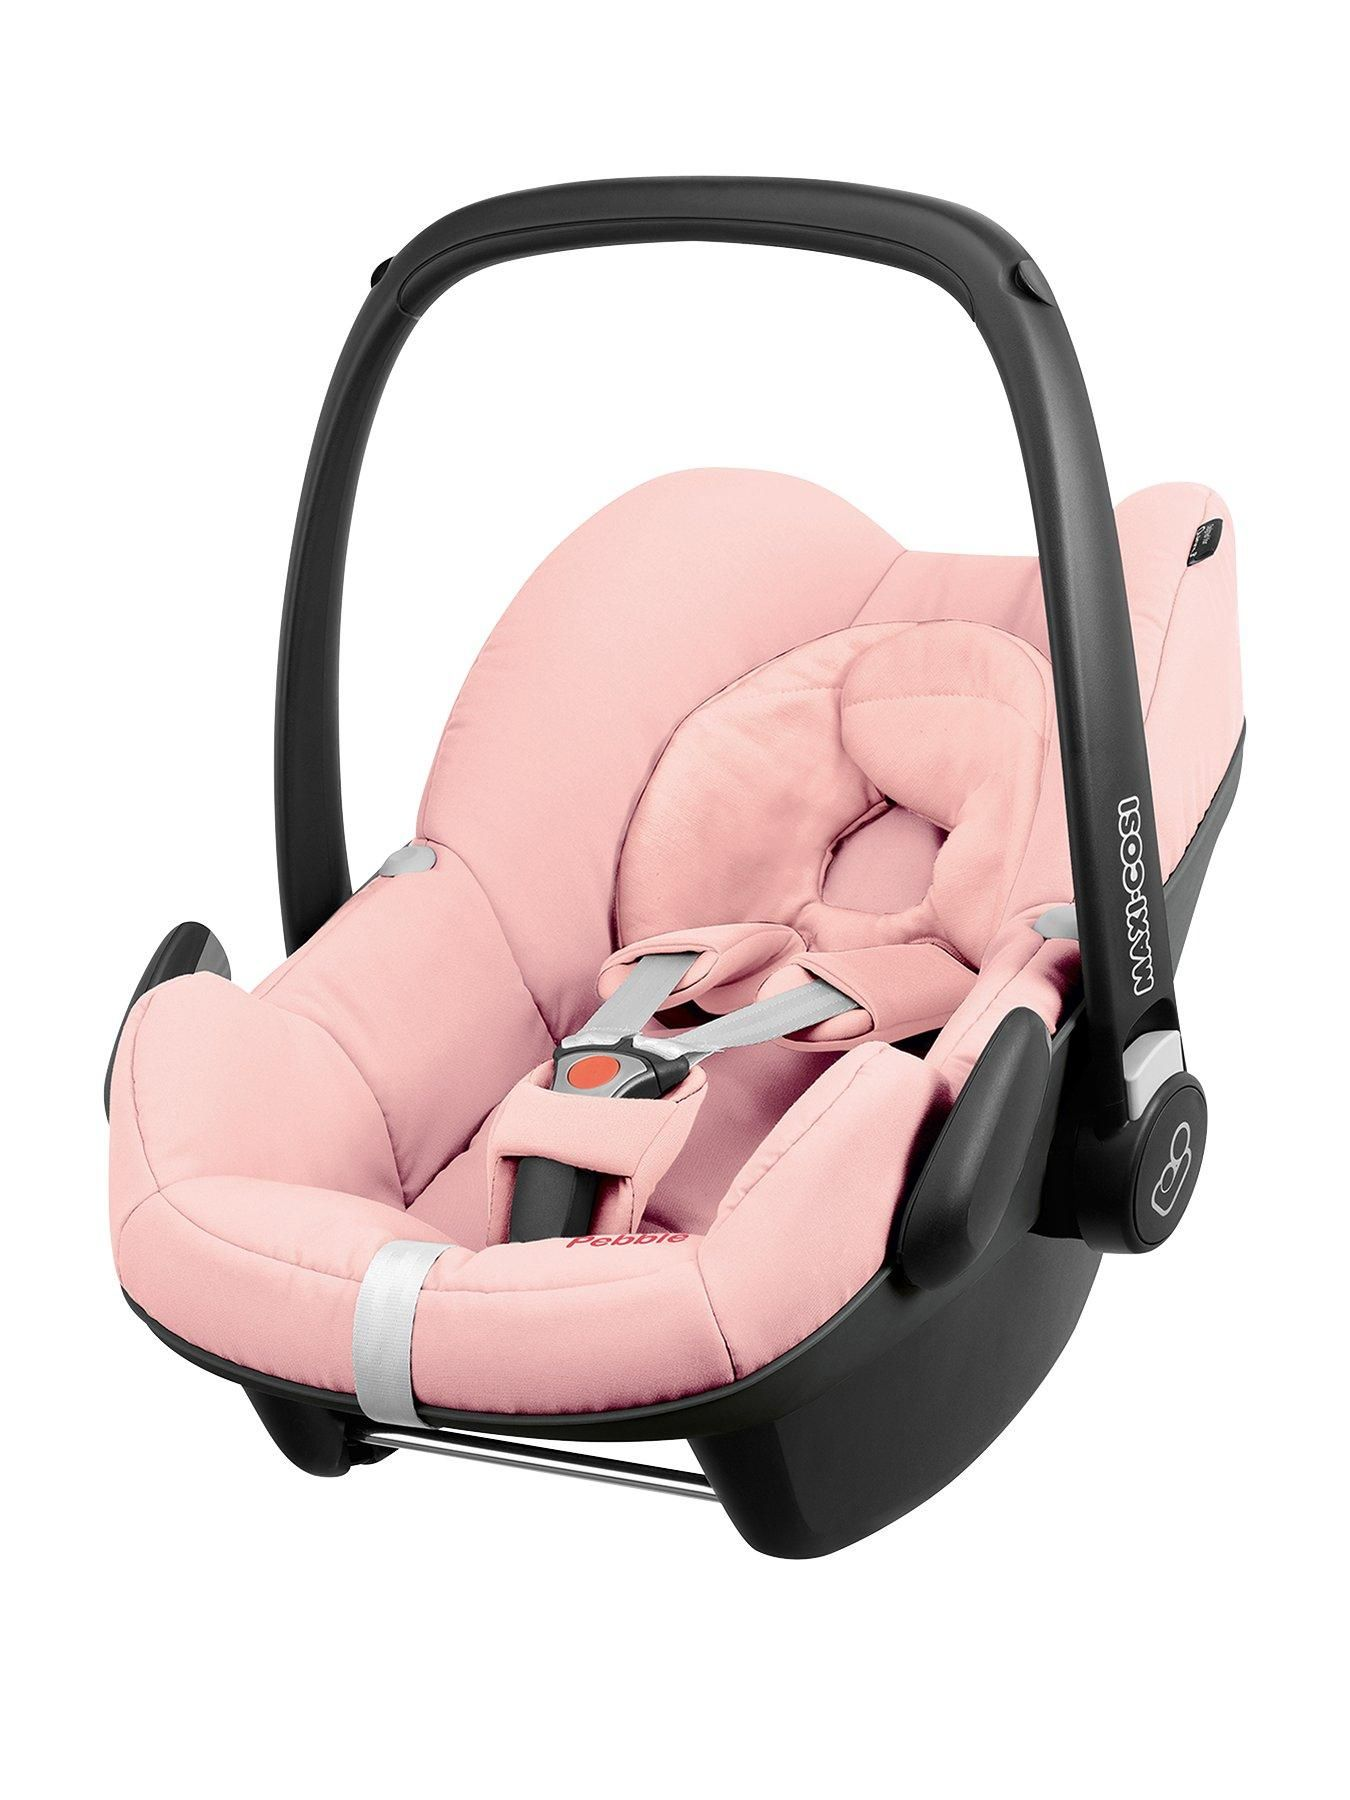 Maxi-Cosi Pebble Car Seat - Designed for Quinny Suitable from birth to  around 12 months 357b9343e